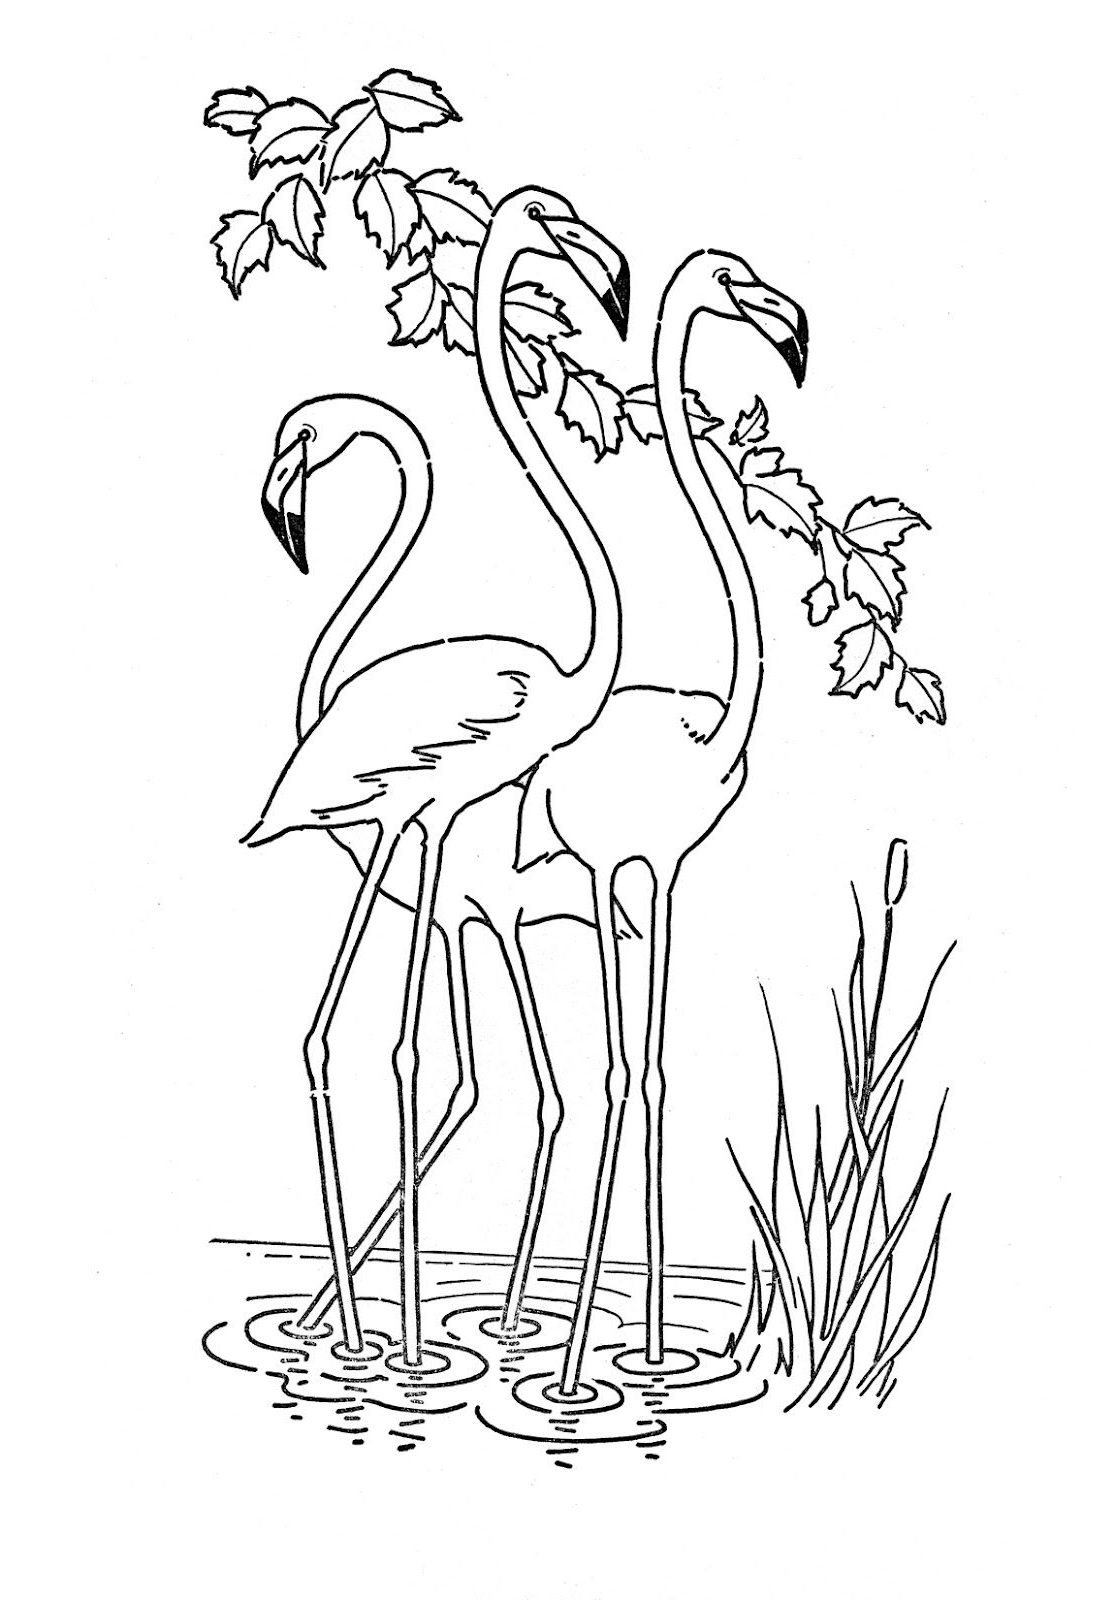 animal color sheet cute animal coloring pages best coloring pages for kids color animal sheet